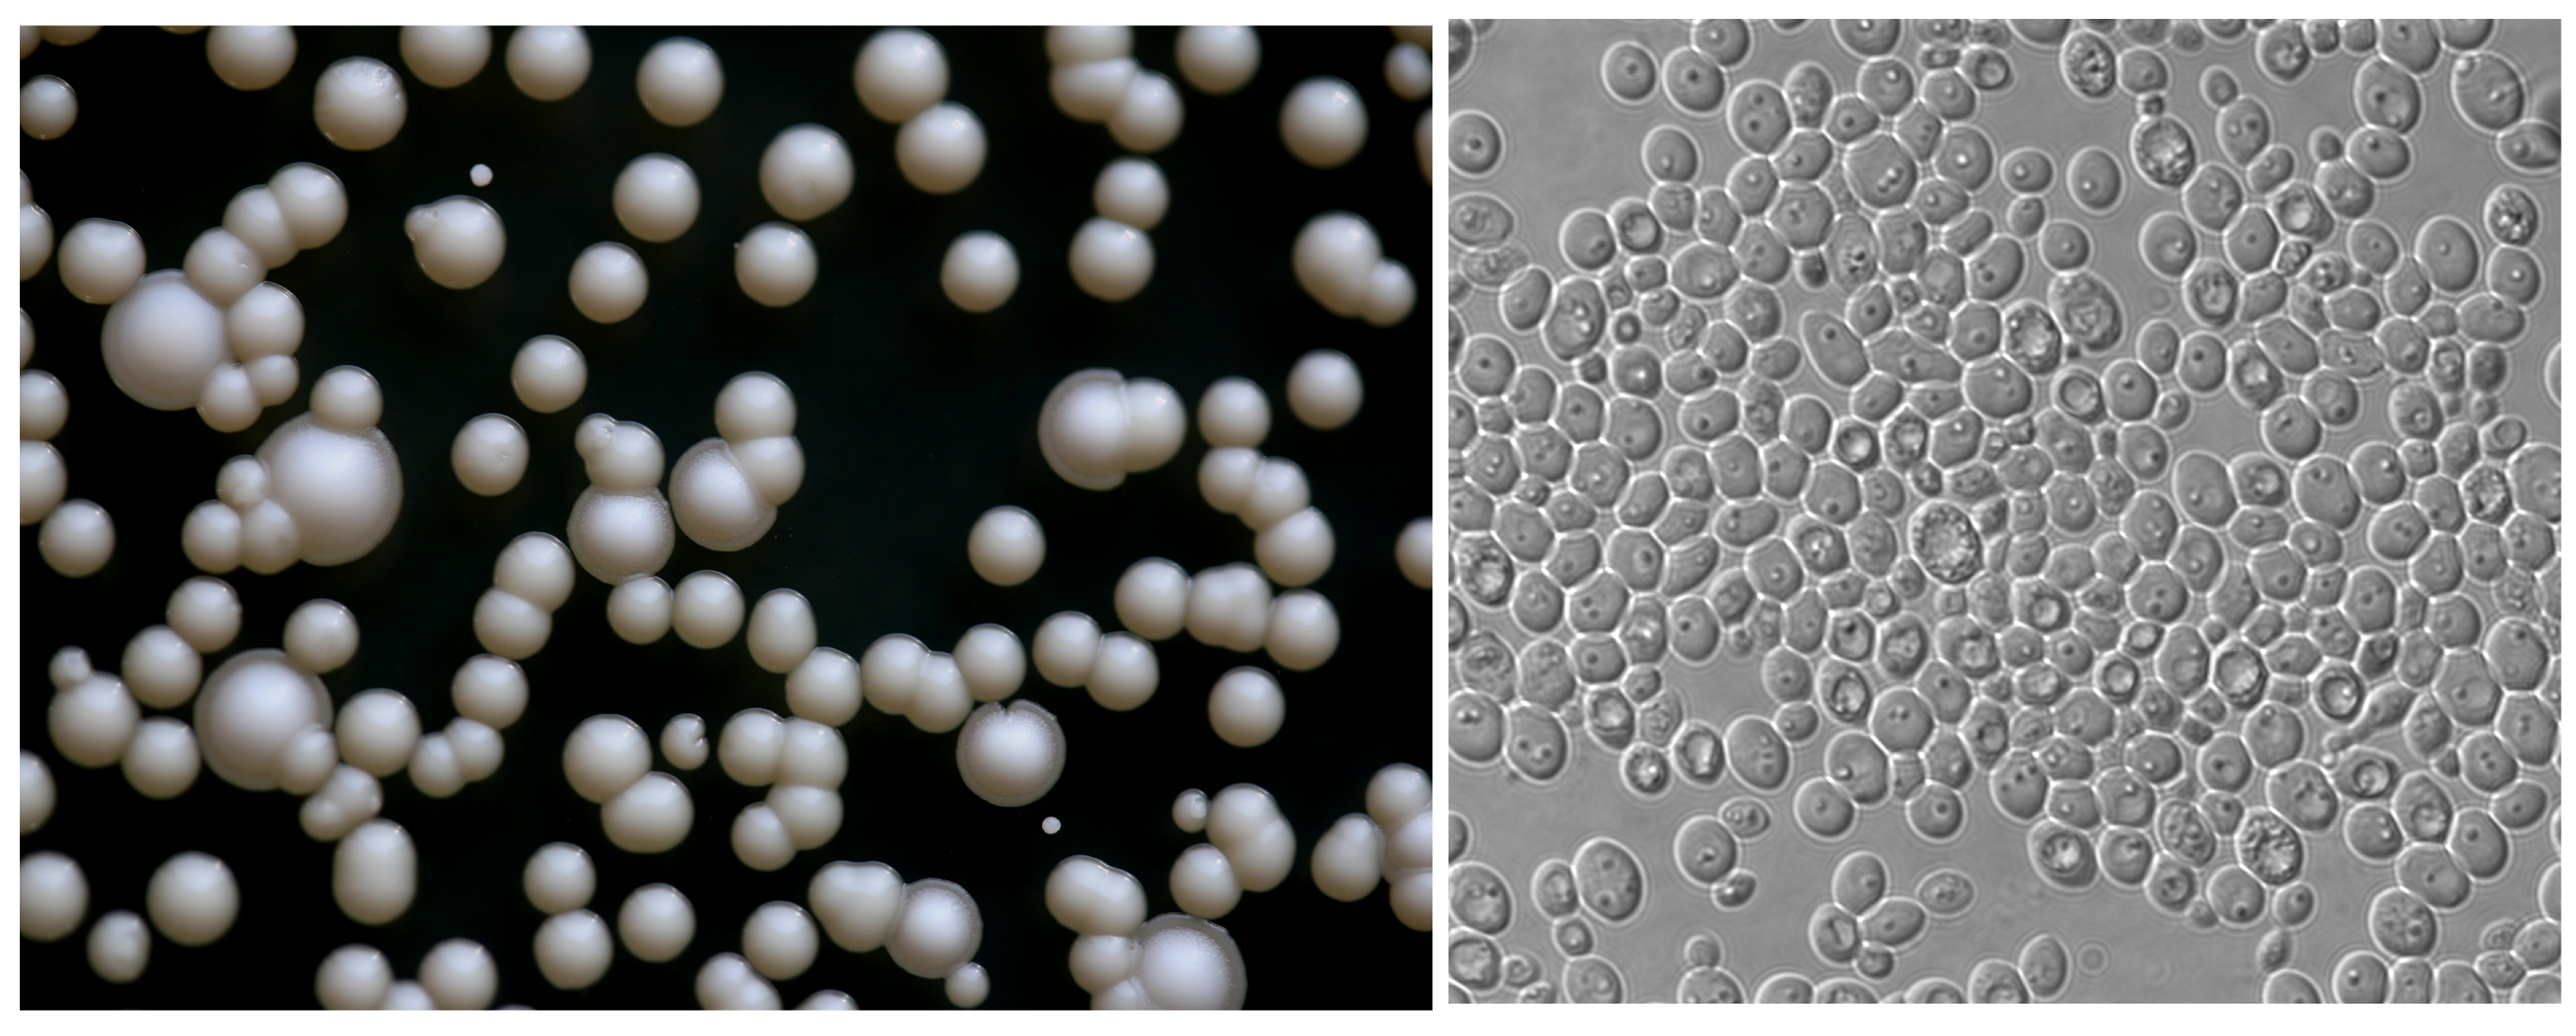 Left: K. naganishii  growing as colonies.  The smaller shiny colonies (without rings around them) are K. naganishii  Right: K. naganishii cells at magnification.